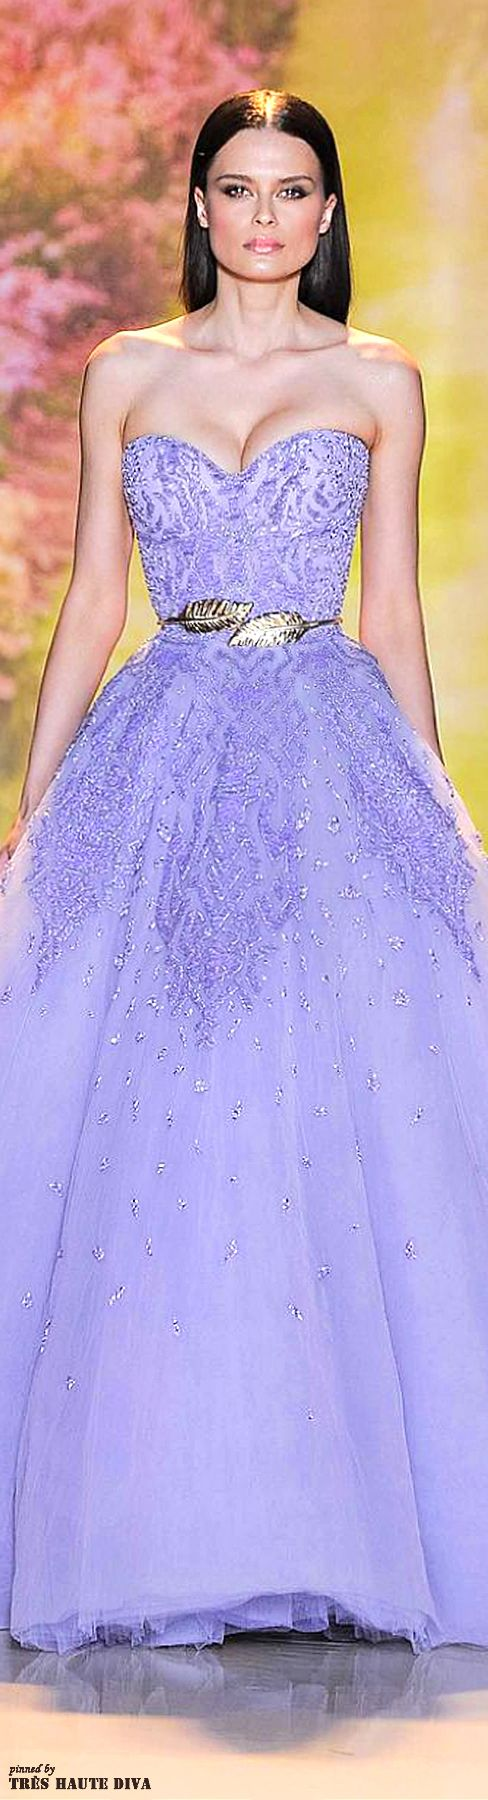 317 best Dresses images on Pinterest | Evening gowns, Formal prom ...